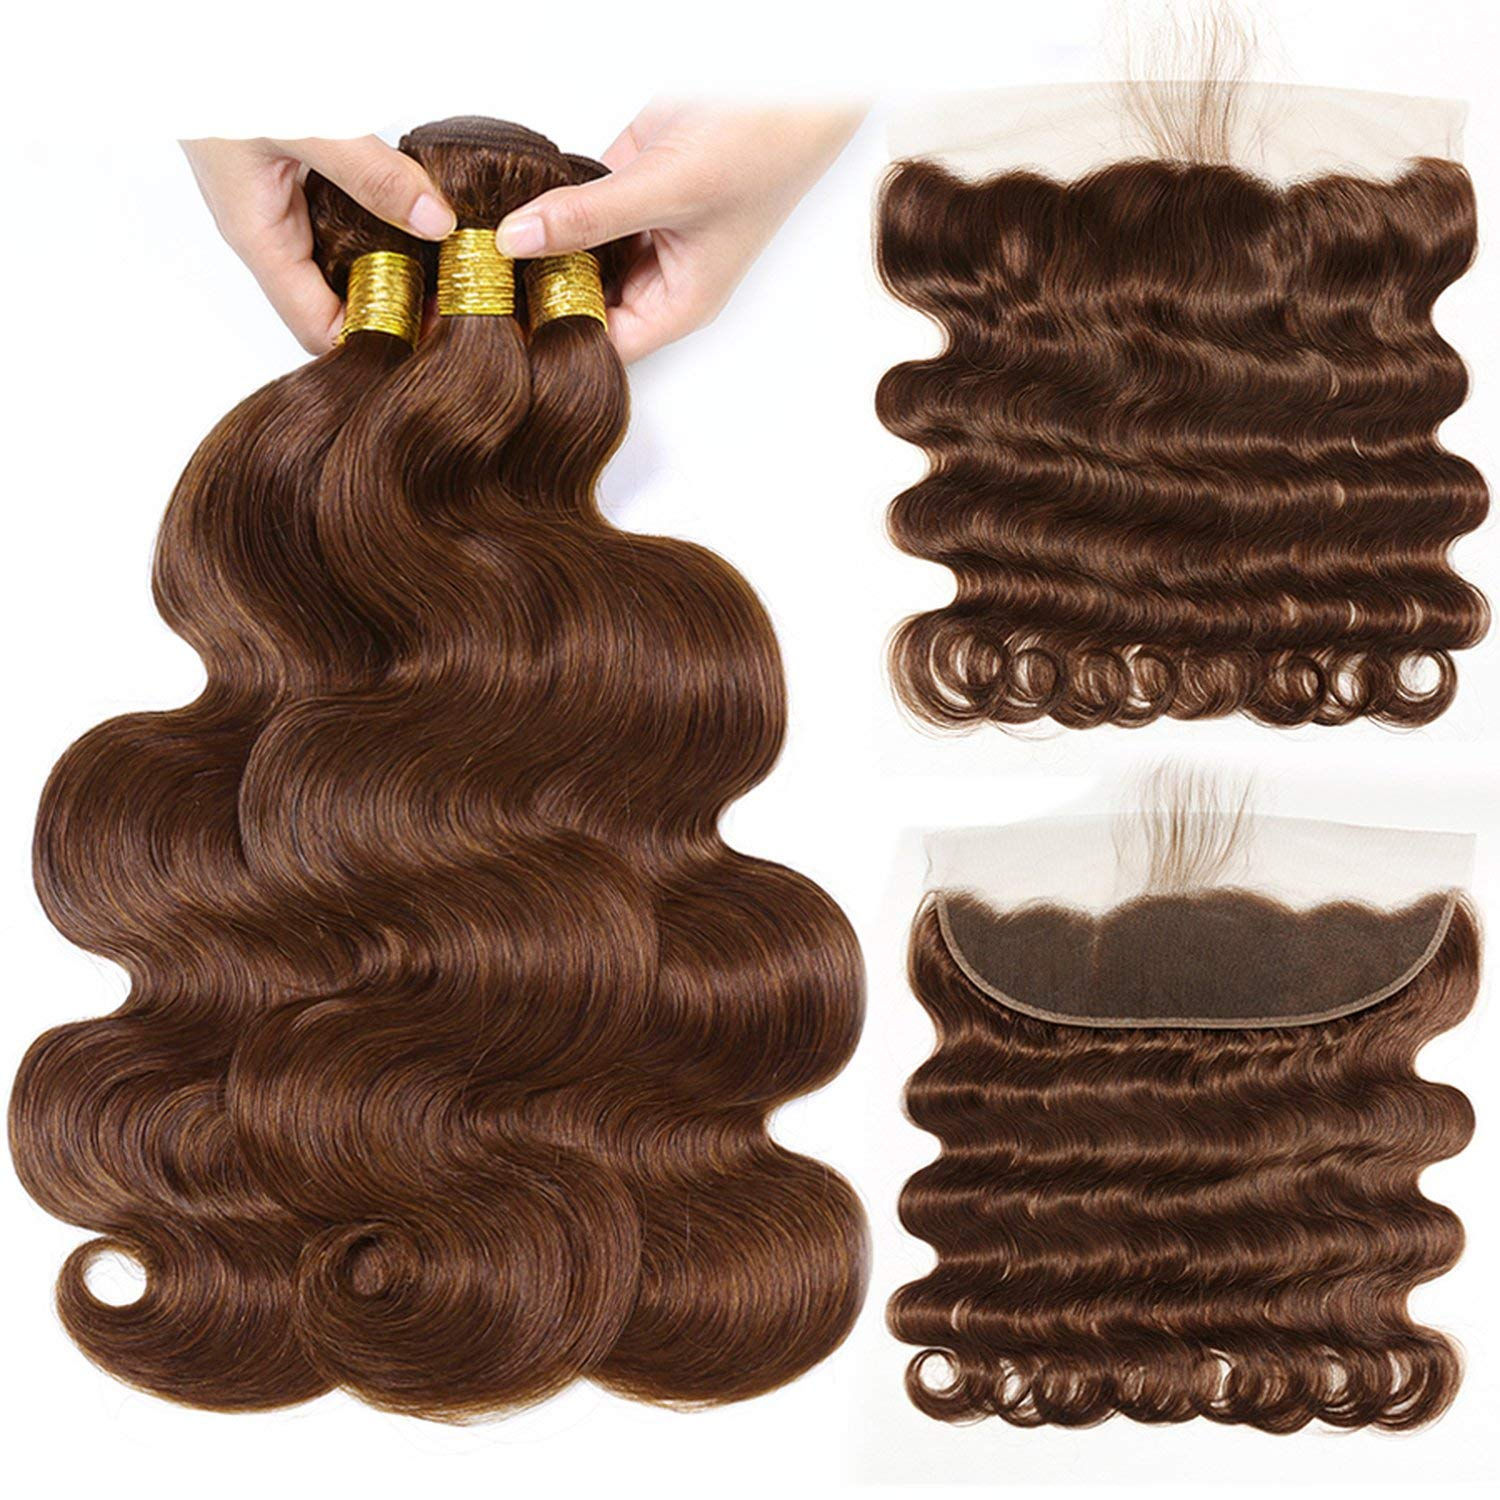 #4 Light Brown Body Wave Hair Bundles With Frontal Brazilian Hair Weave Bundles Human Hair Bundles Romantico NonRemy Hair Extension,16 18+14Closure,Light Brown nonremy